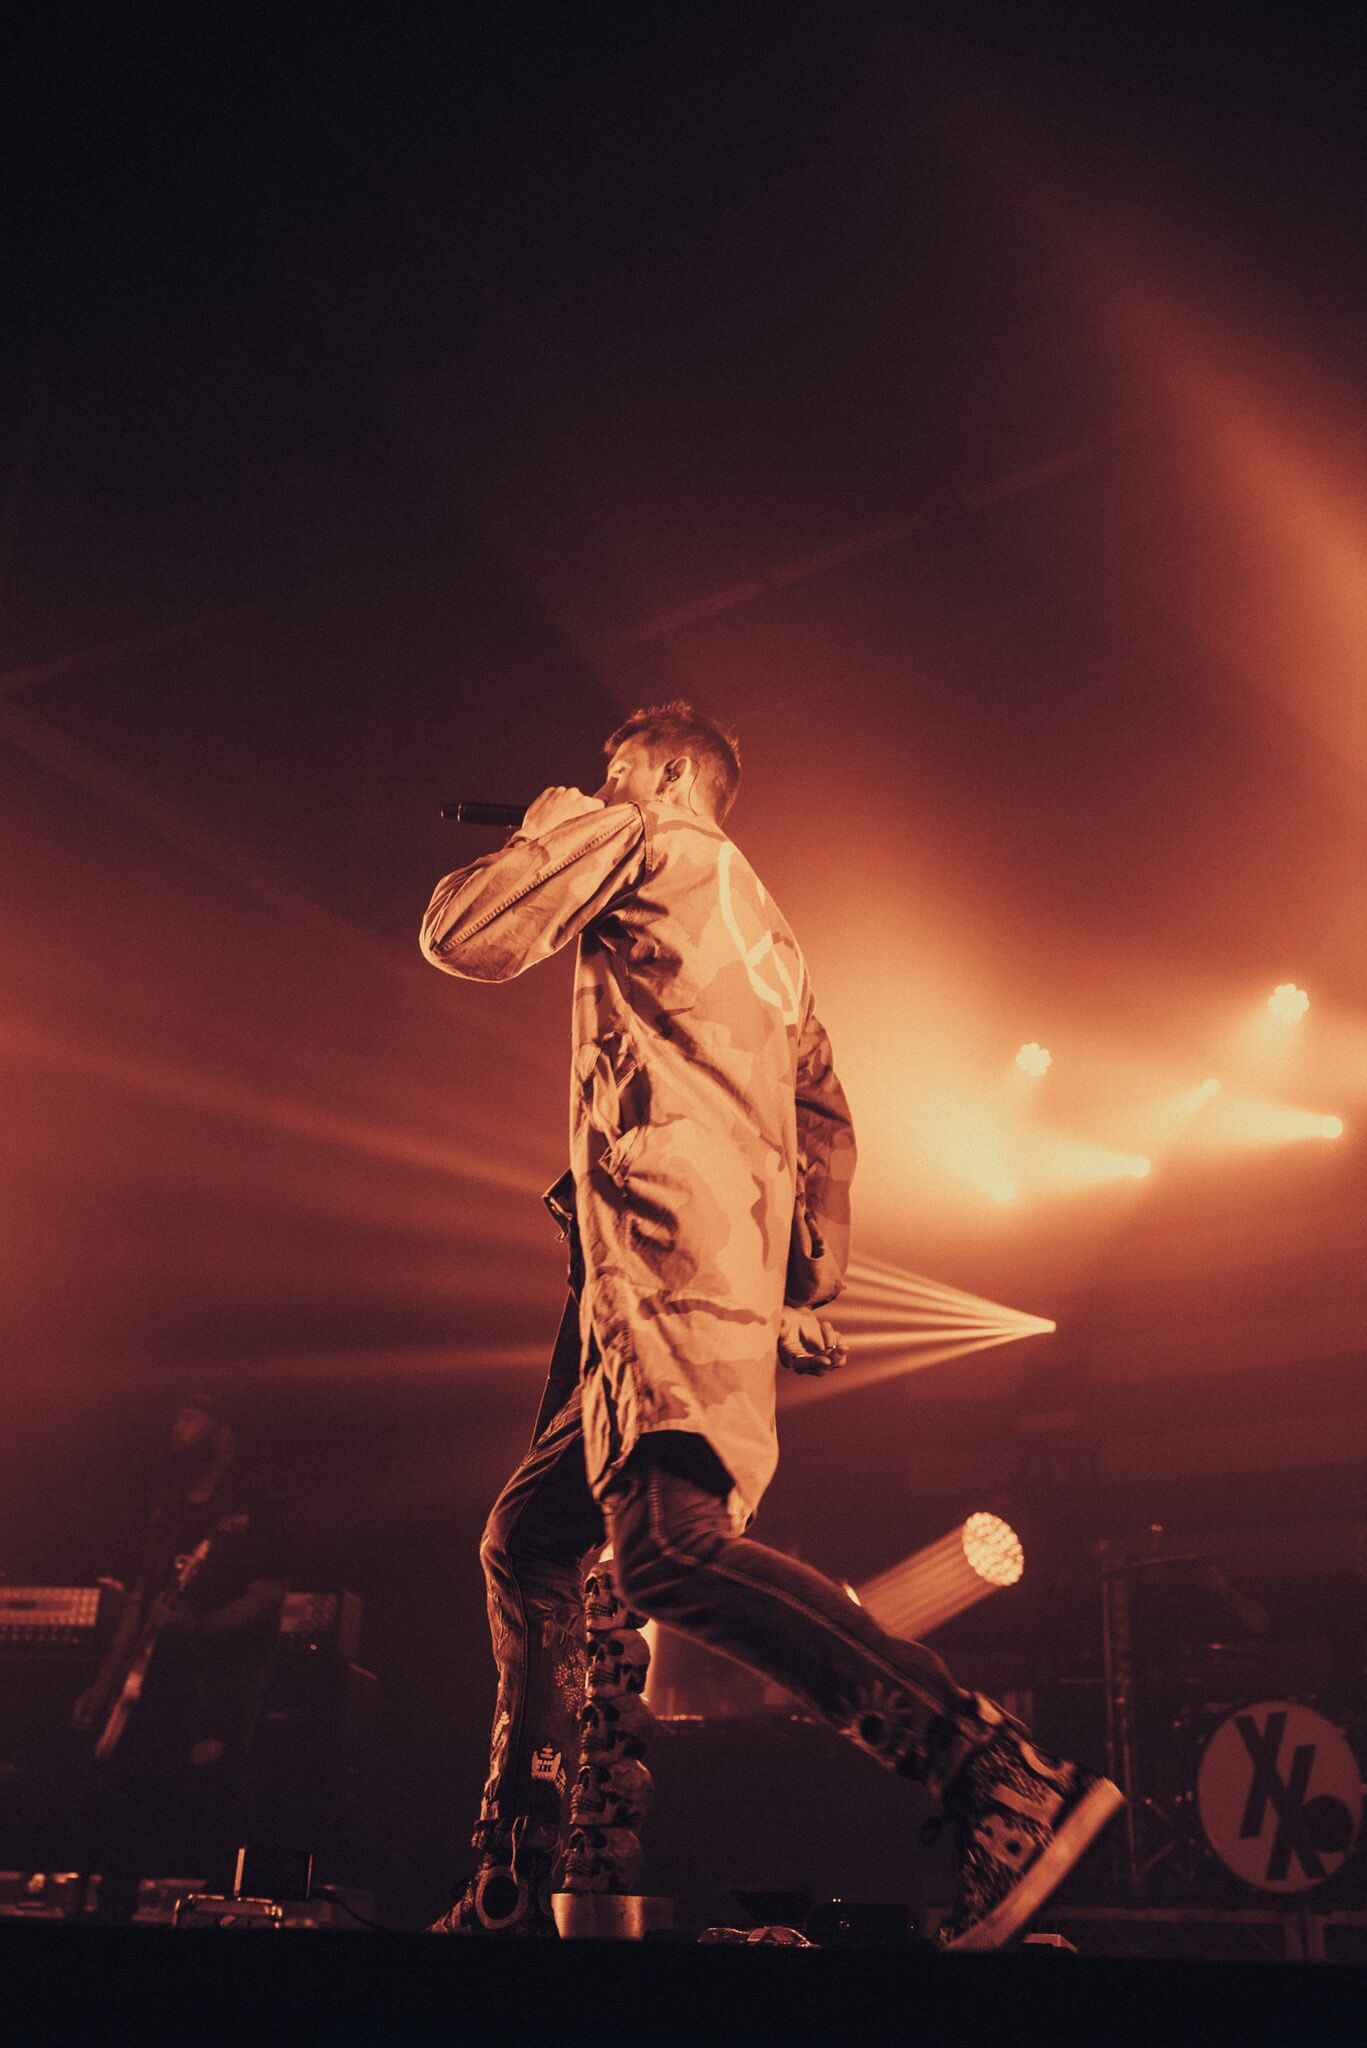 .@machinegunkelly performing live at @MMusicWorks in Nashville. Photos by @nolanknight_. #MGK https://t.co/12BWWGbKrE